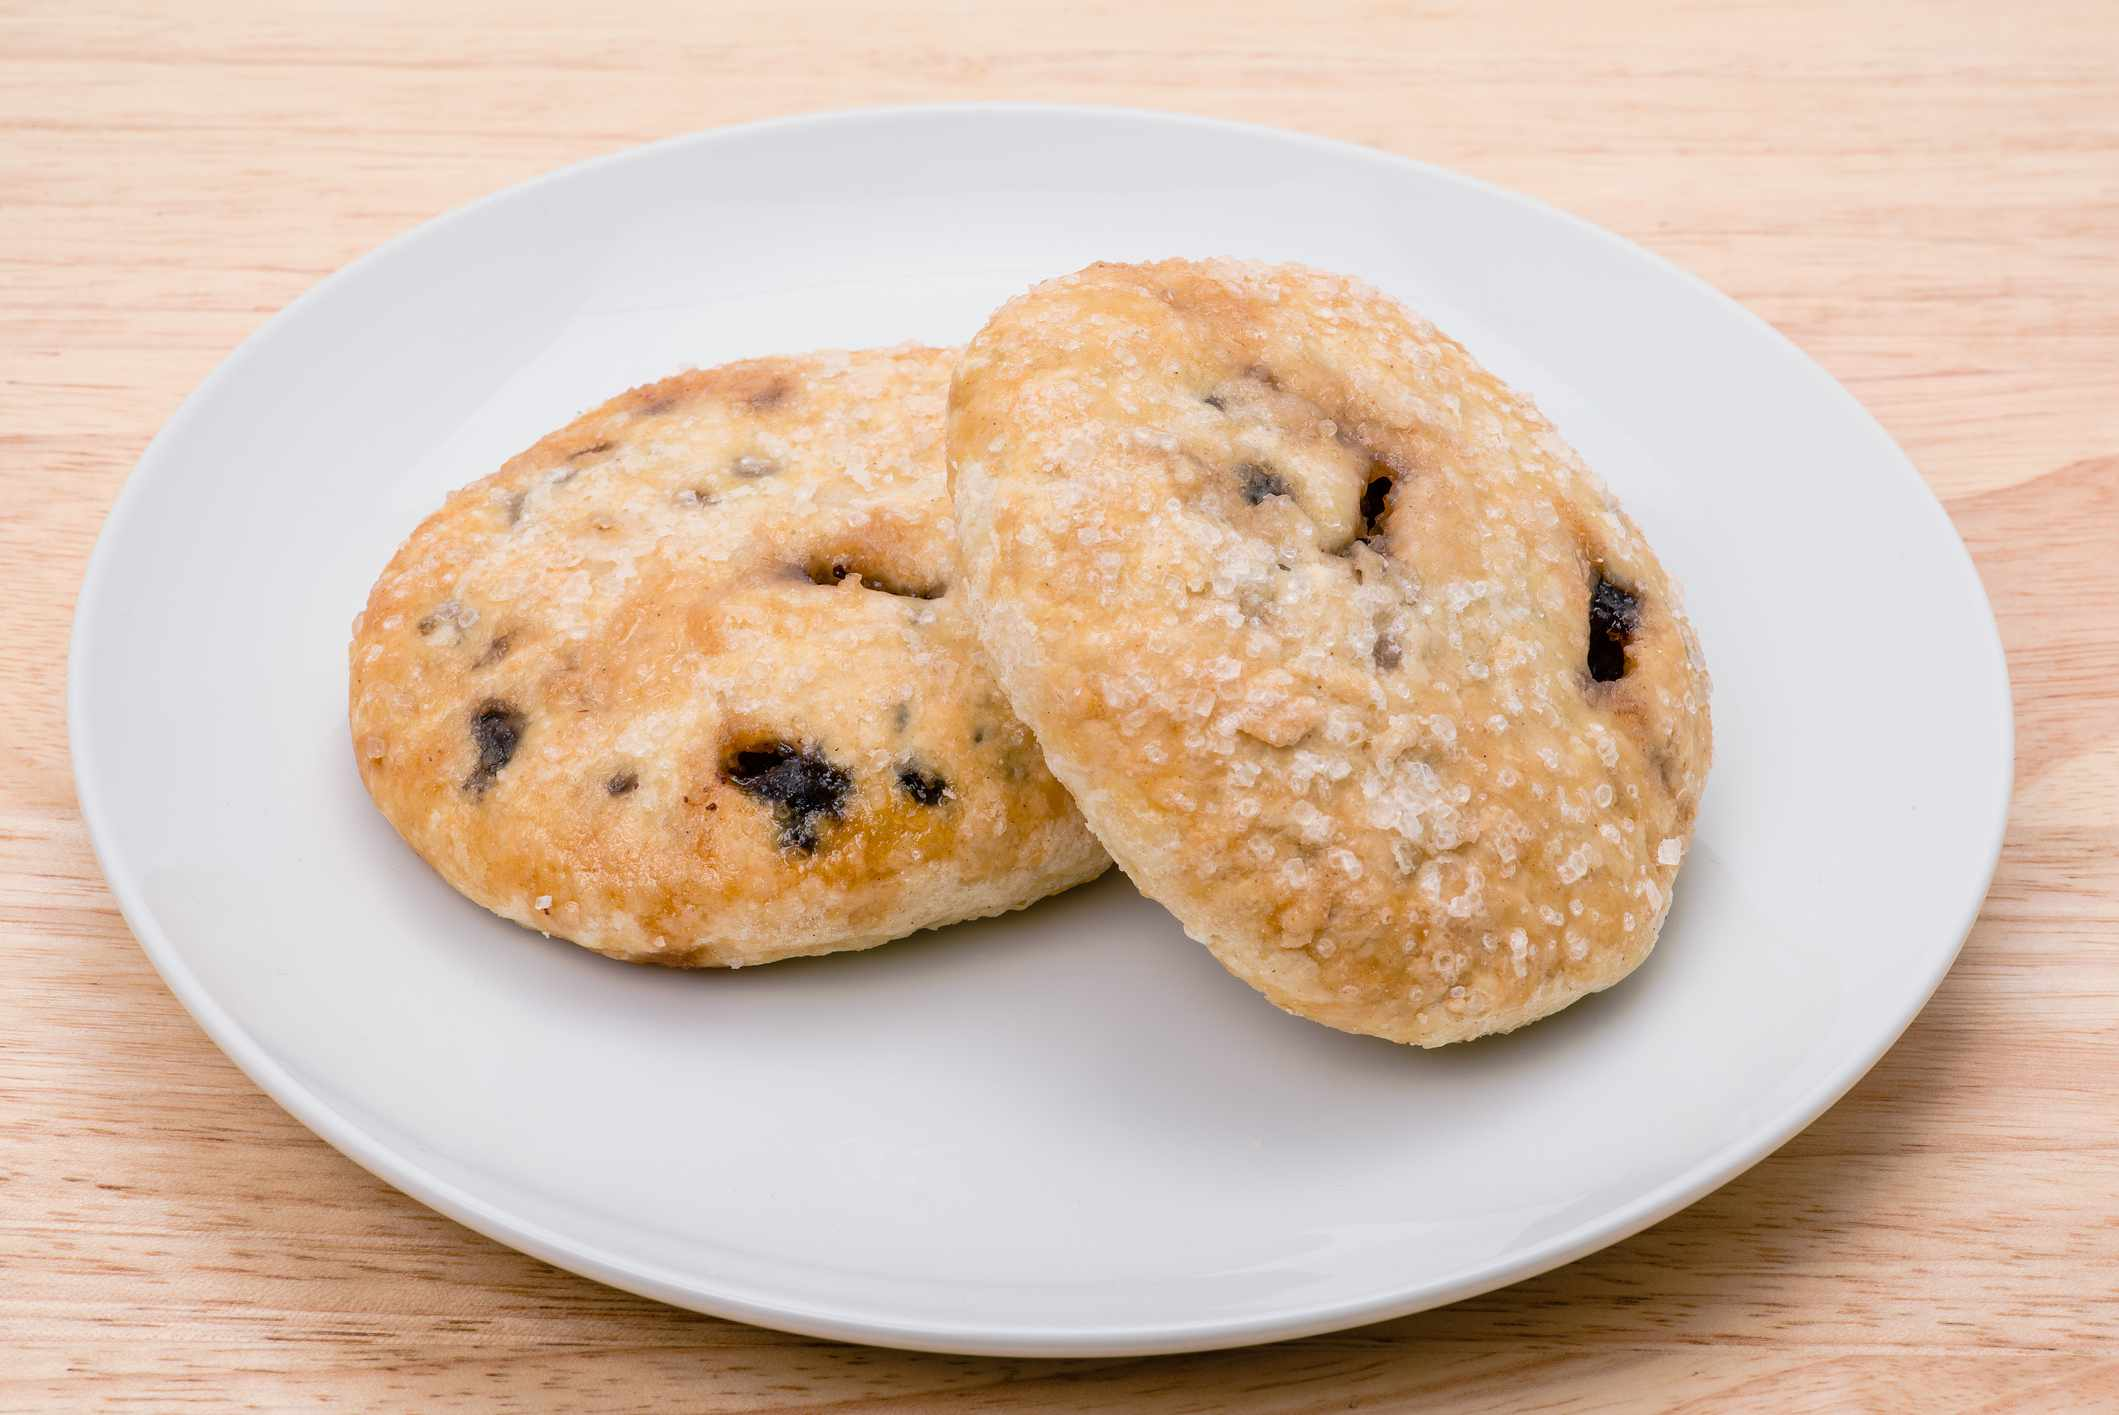 two whole eccles cakes on a white plate